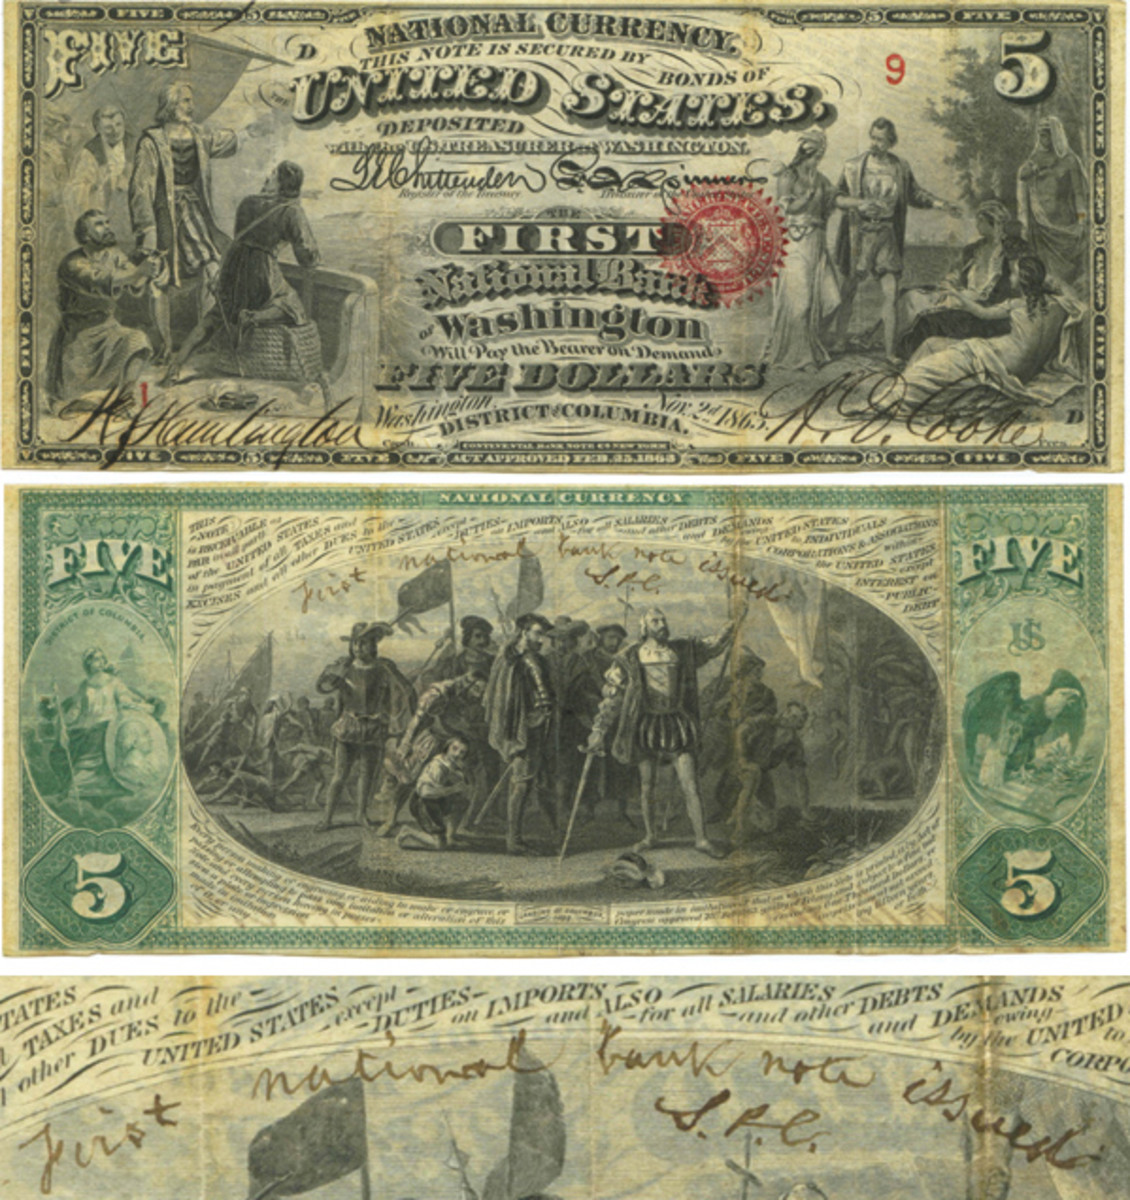 """Bottom note from the first sheet of $5 National Bank Notes, Treasury sheet serial 9—the first Treasury serial used, bank sheet serial 1, plate position D with Chase's handwritten """"First national bank note issued, S. P. C."""" on the back. (Photo courtesy of Mark Hotz)"""